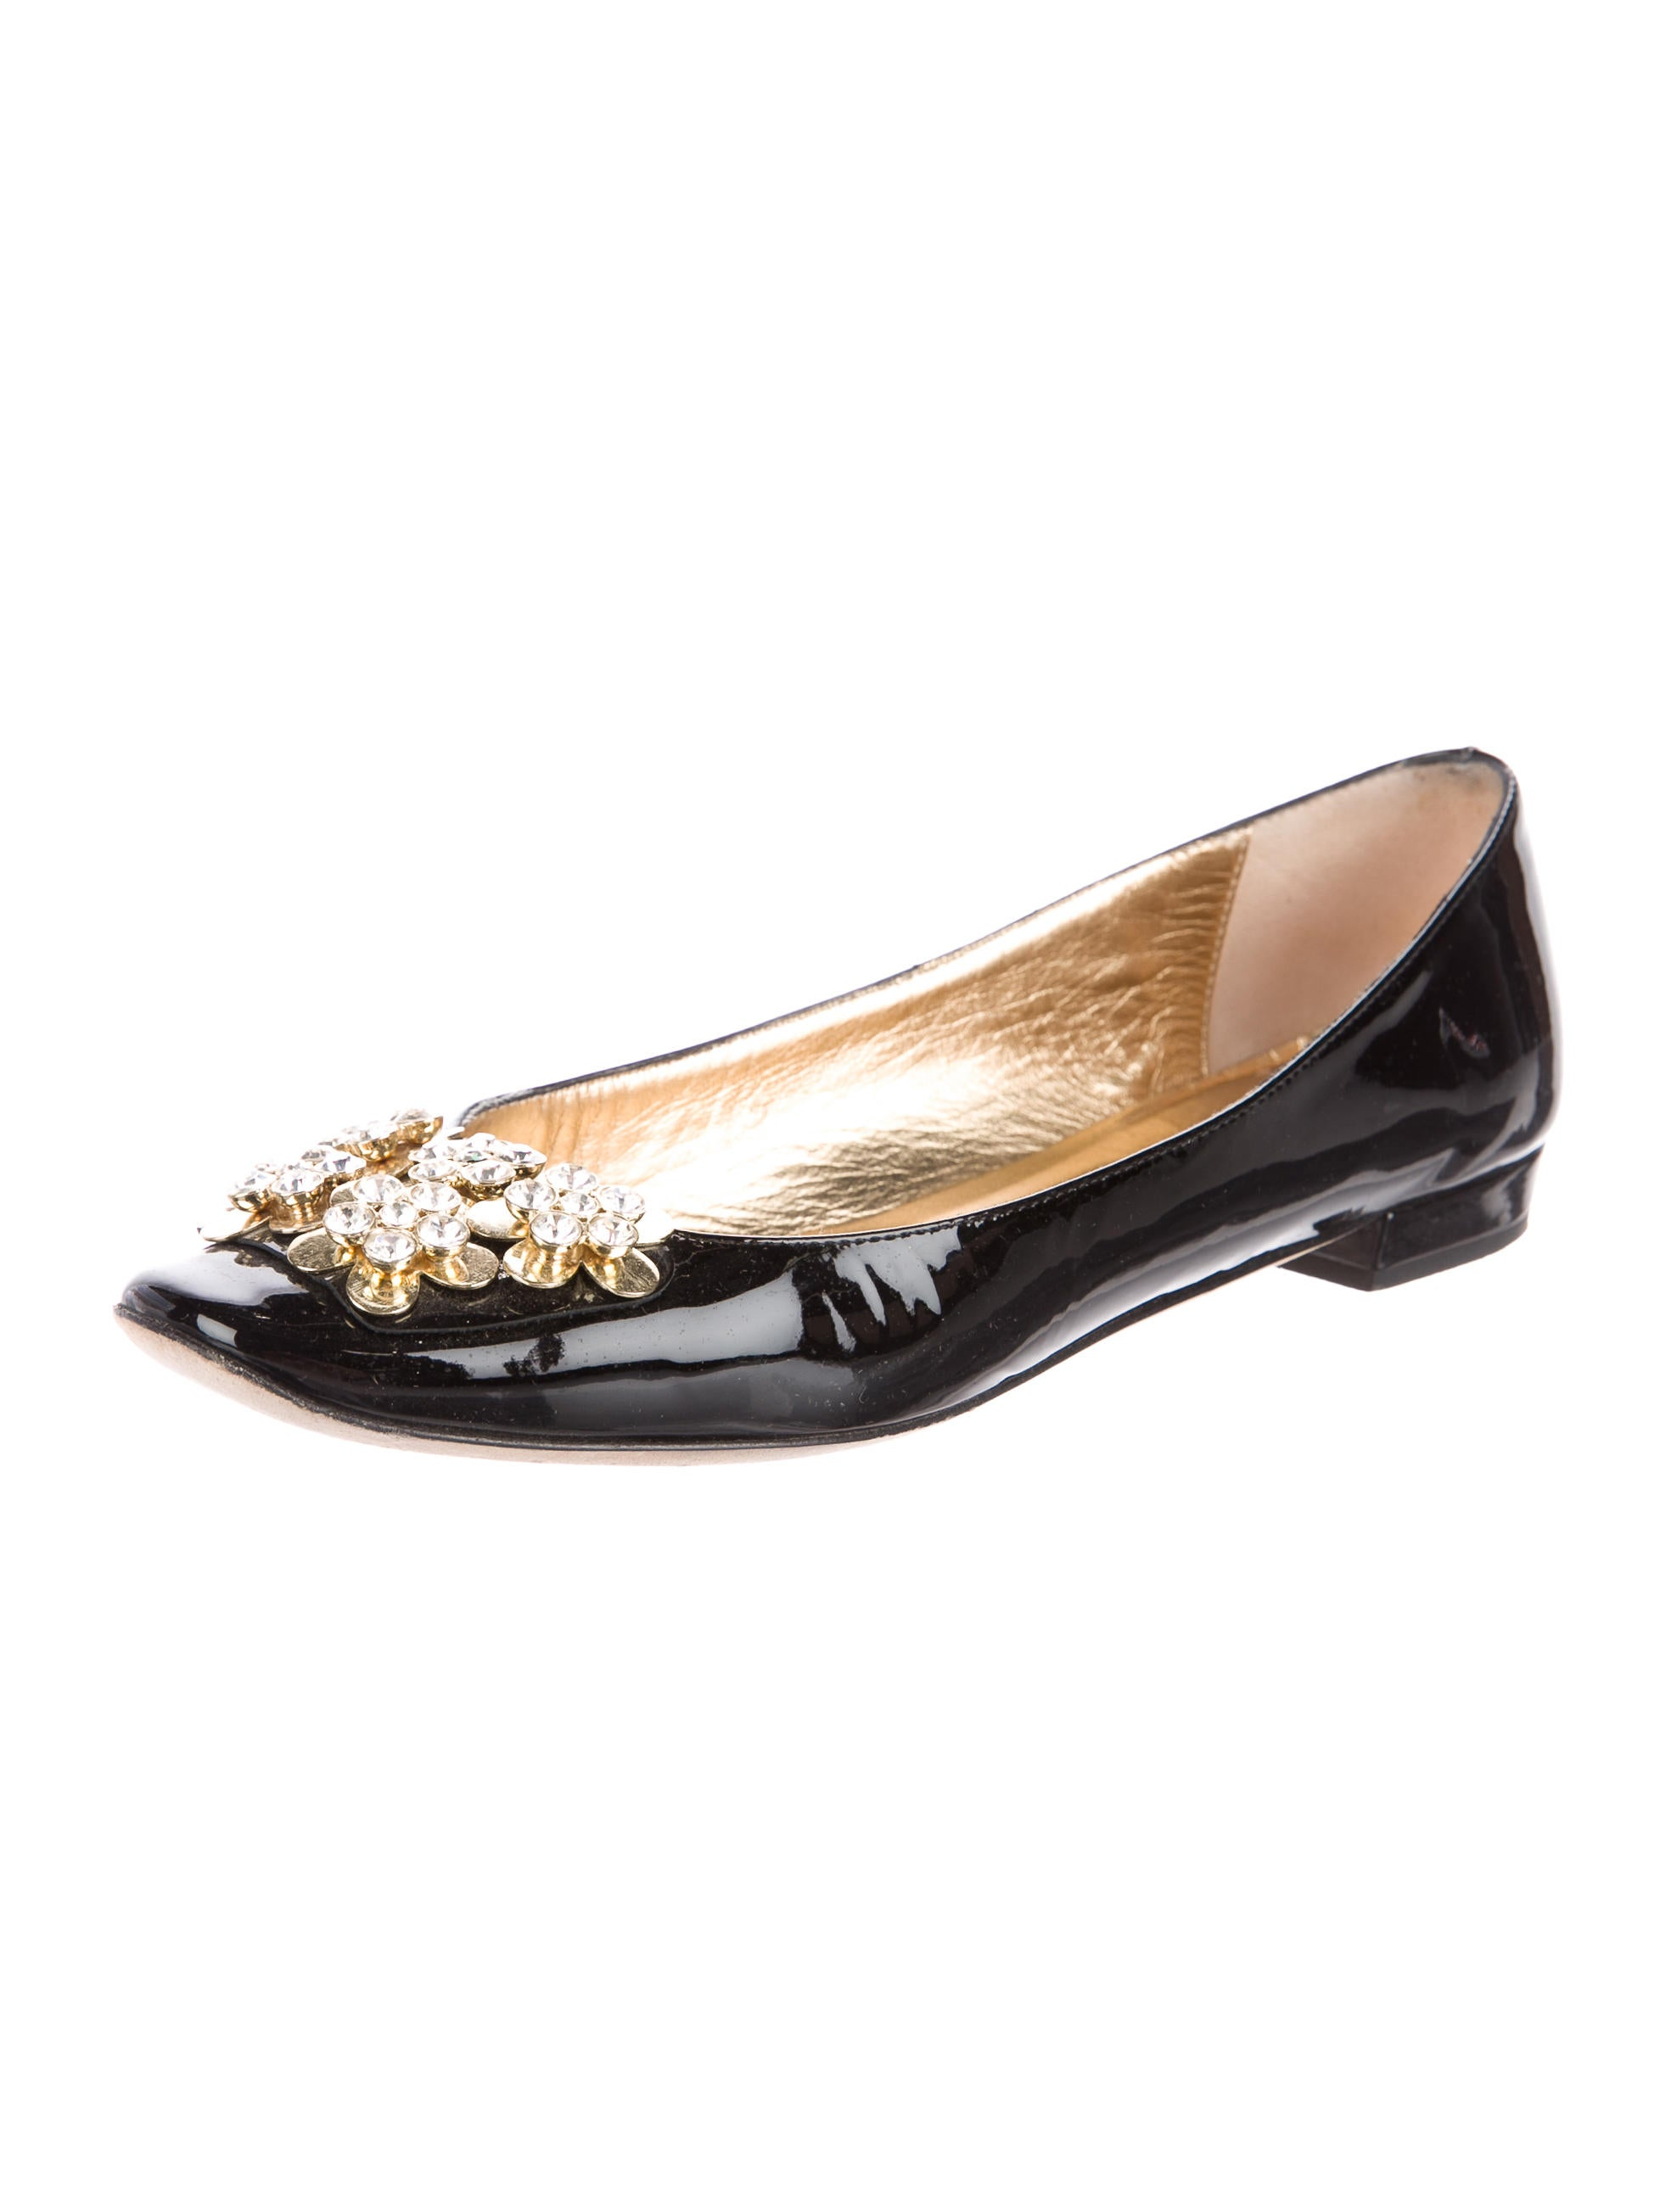 Kate spade new york embellished patent leather flats for Kate spade new york flats